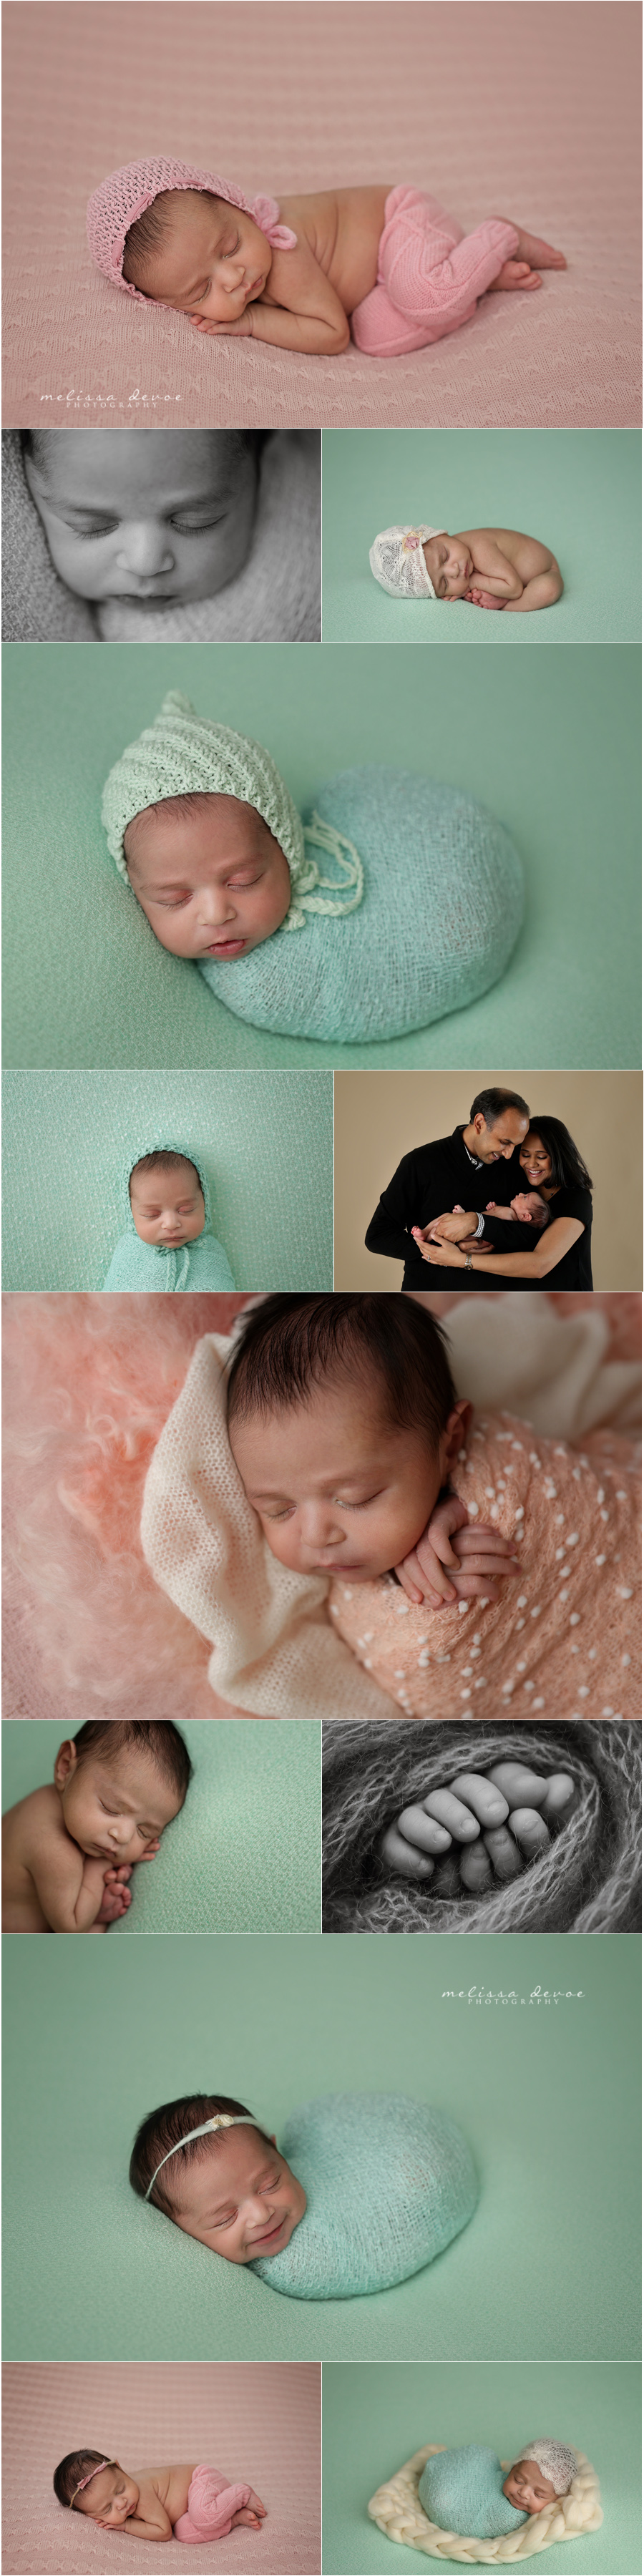 Melissa DeVoe Photography Raleigh NC Newborn Baby Photographer 2